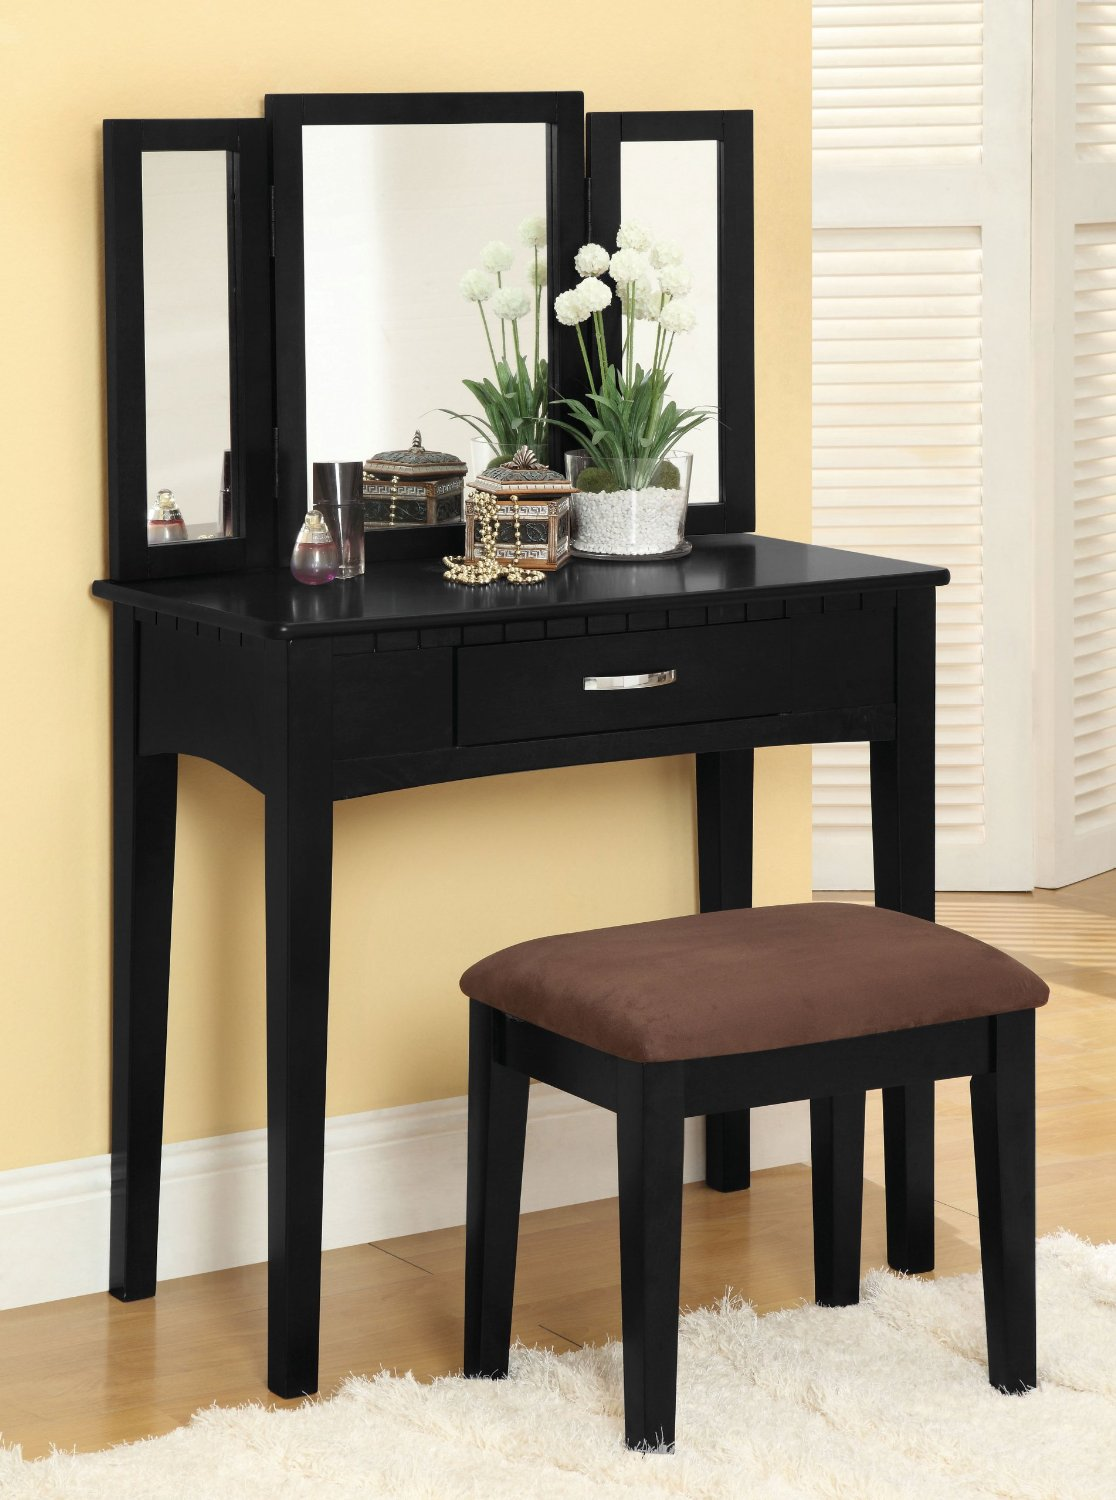 Semi matte black painted dressing table consisting of drawer and a mirror frame. Along with it was also manufactured a stool with upholstery. Best dressing tables in sharjah.